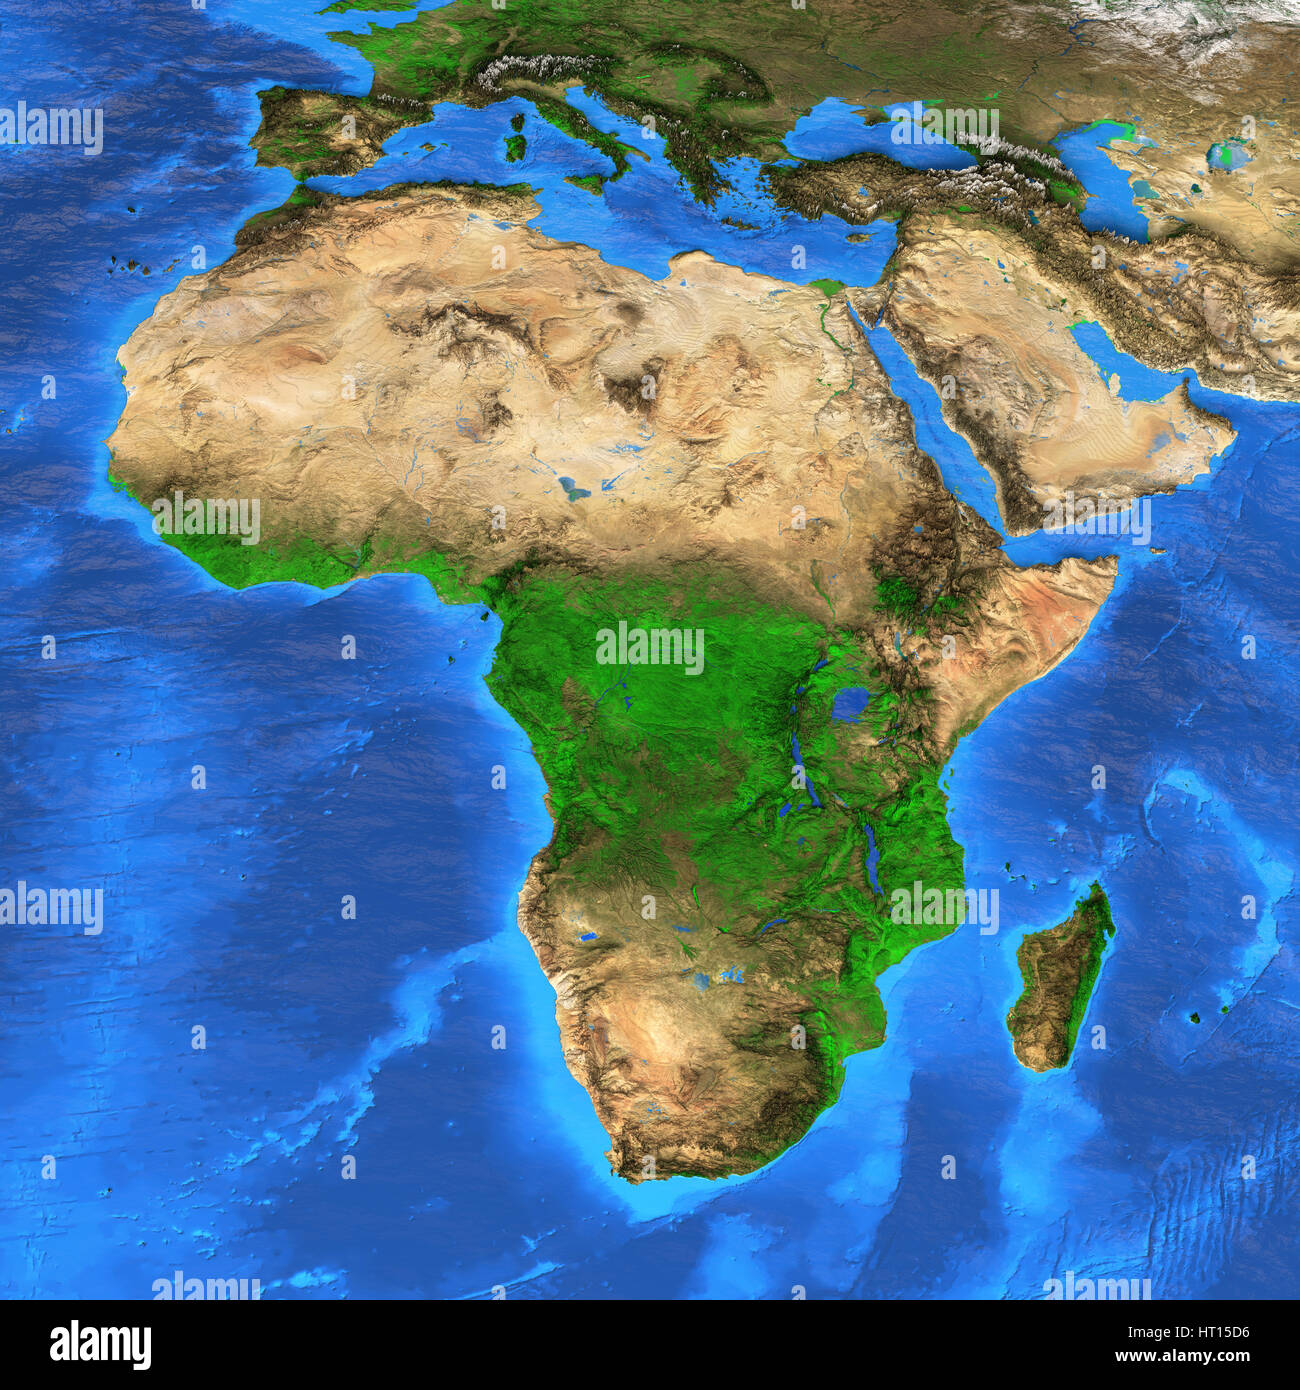 Detailed Satellite View Of The Earth And Its Landforms Africa Map - Earth map satellite